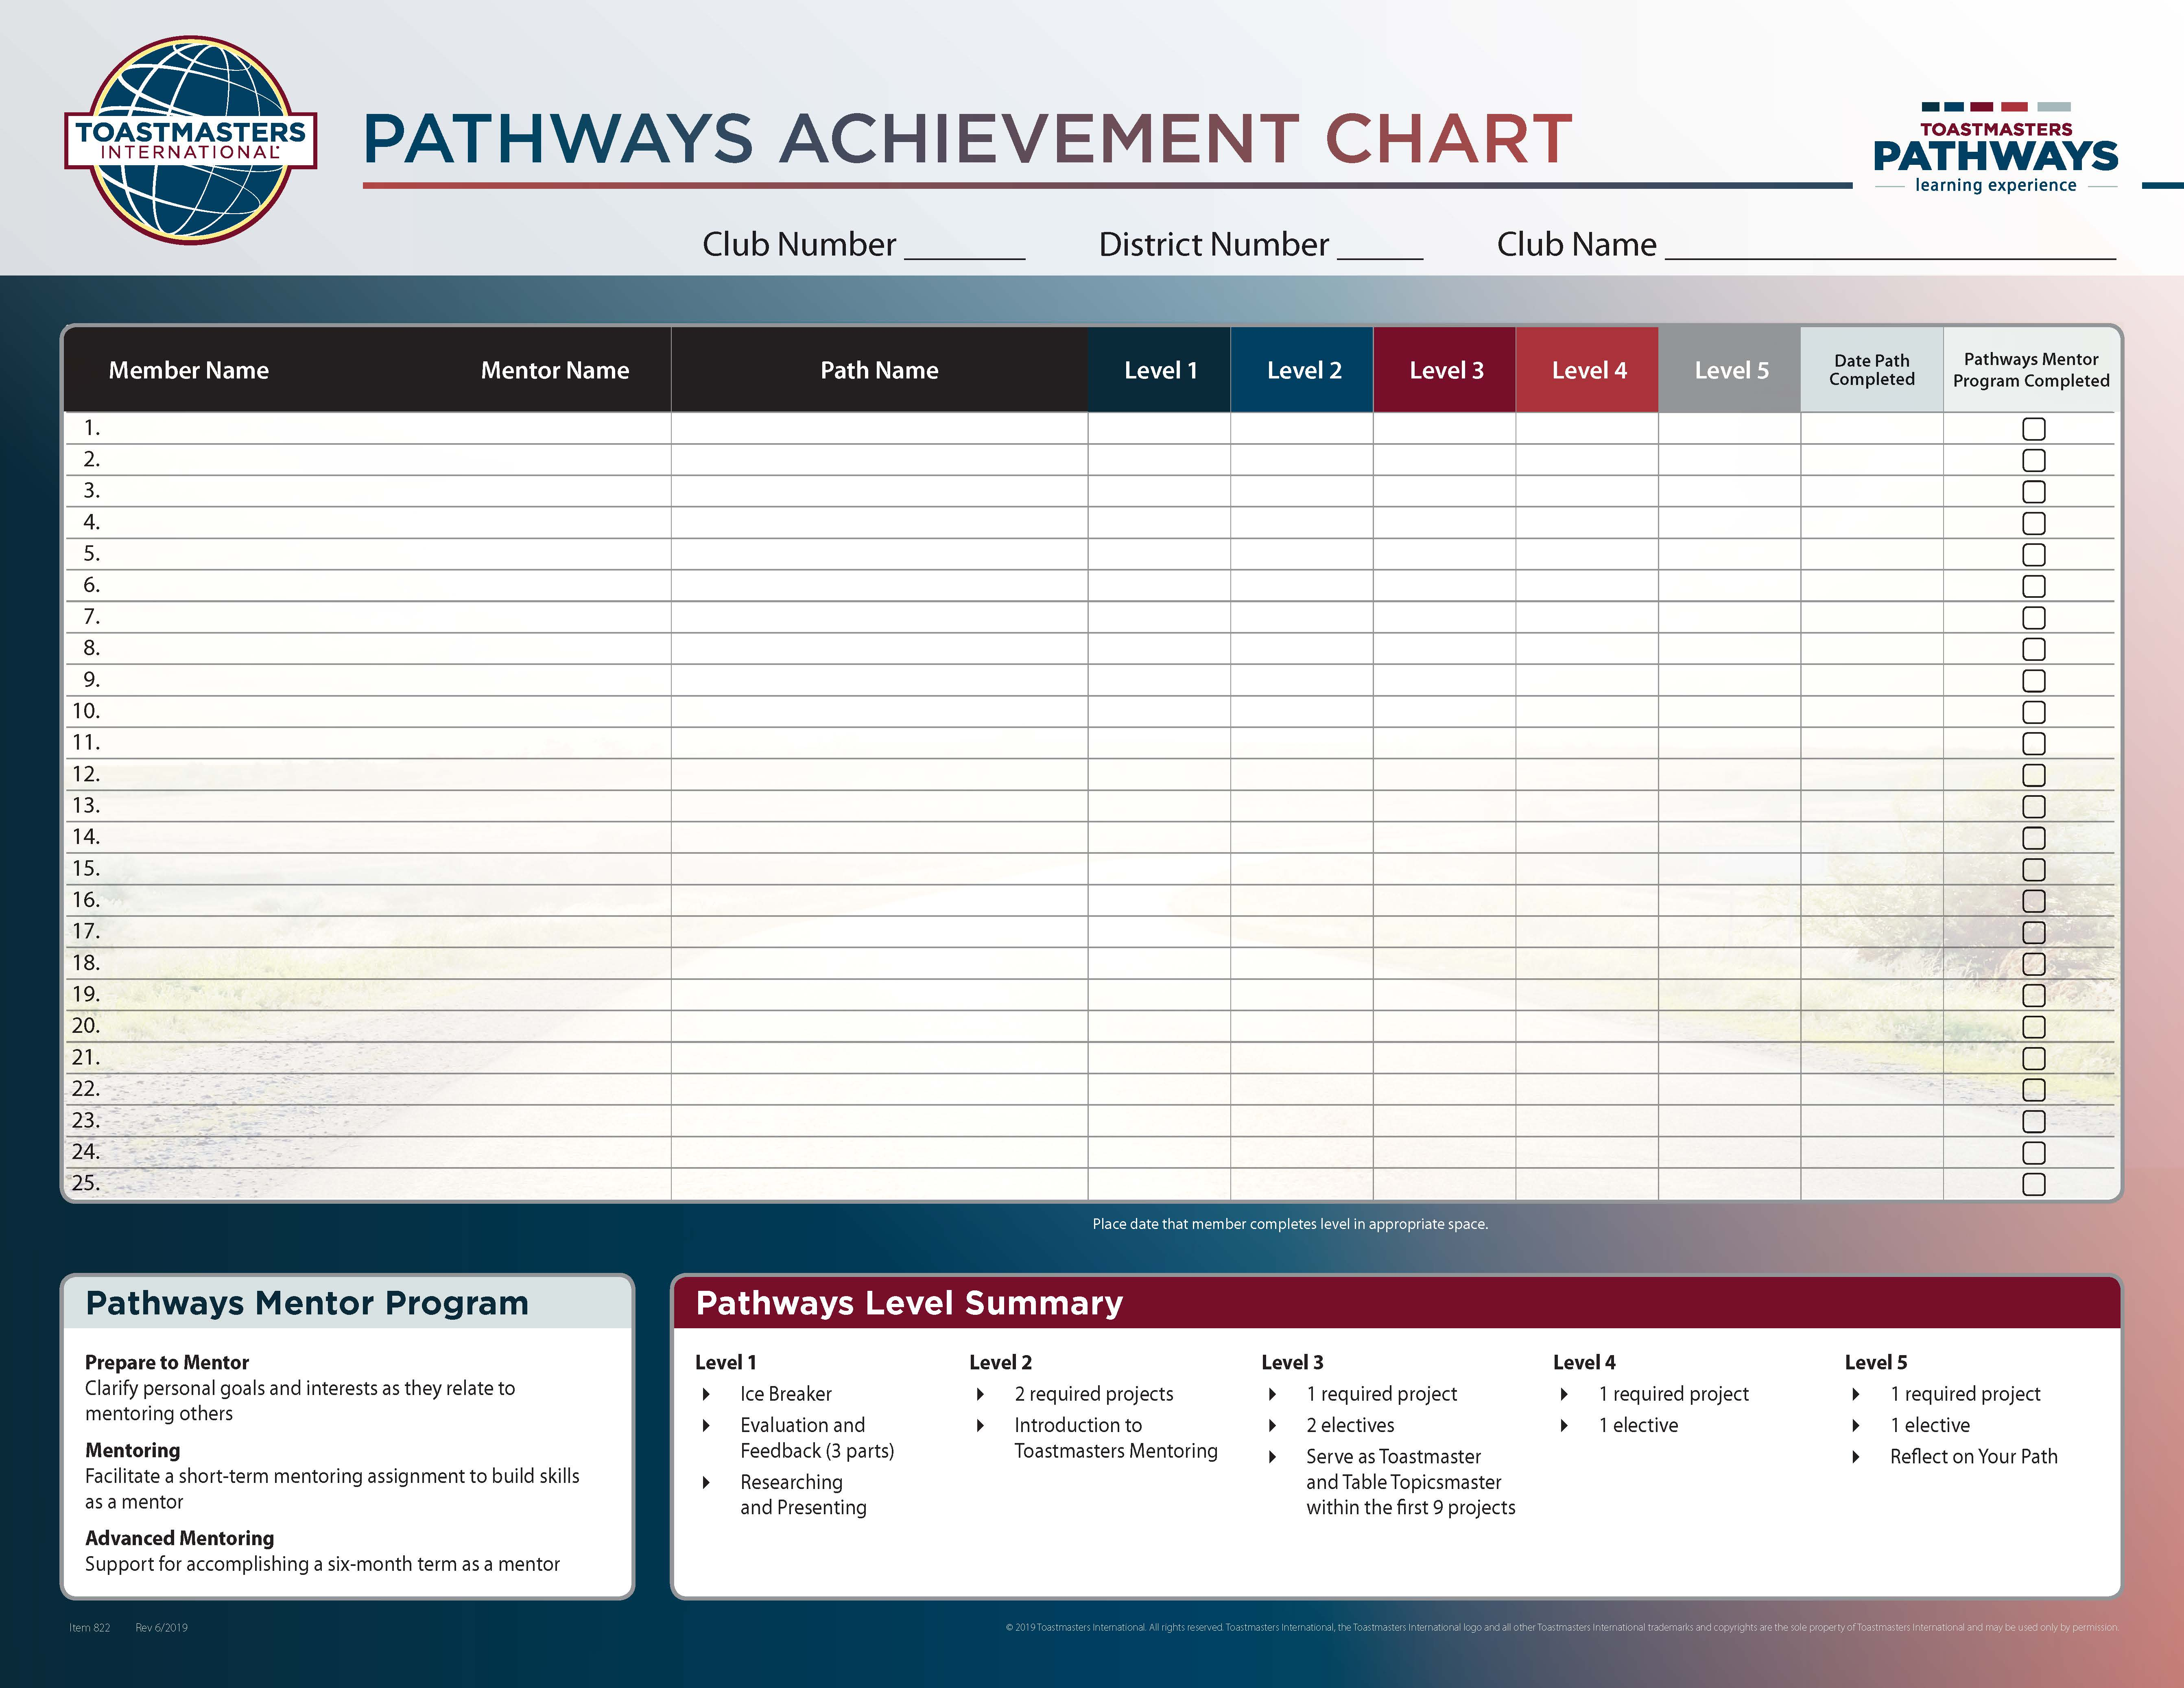 821-pathways-achievement-chart-full-color